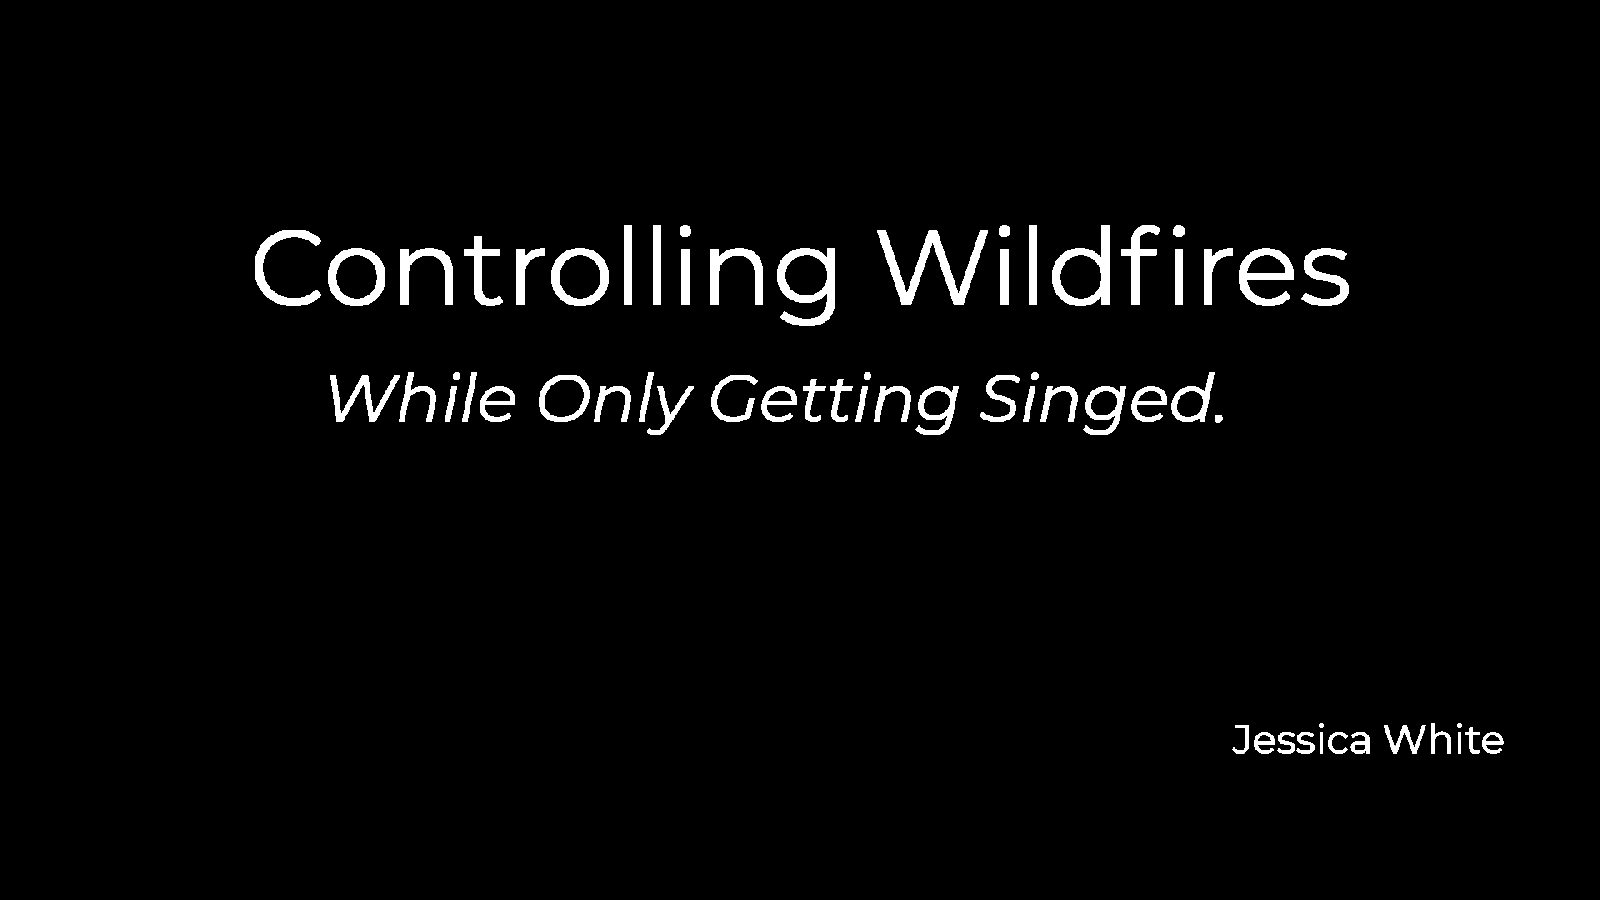 Controlling Wildfires While Only Getting Singed.